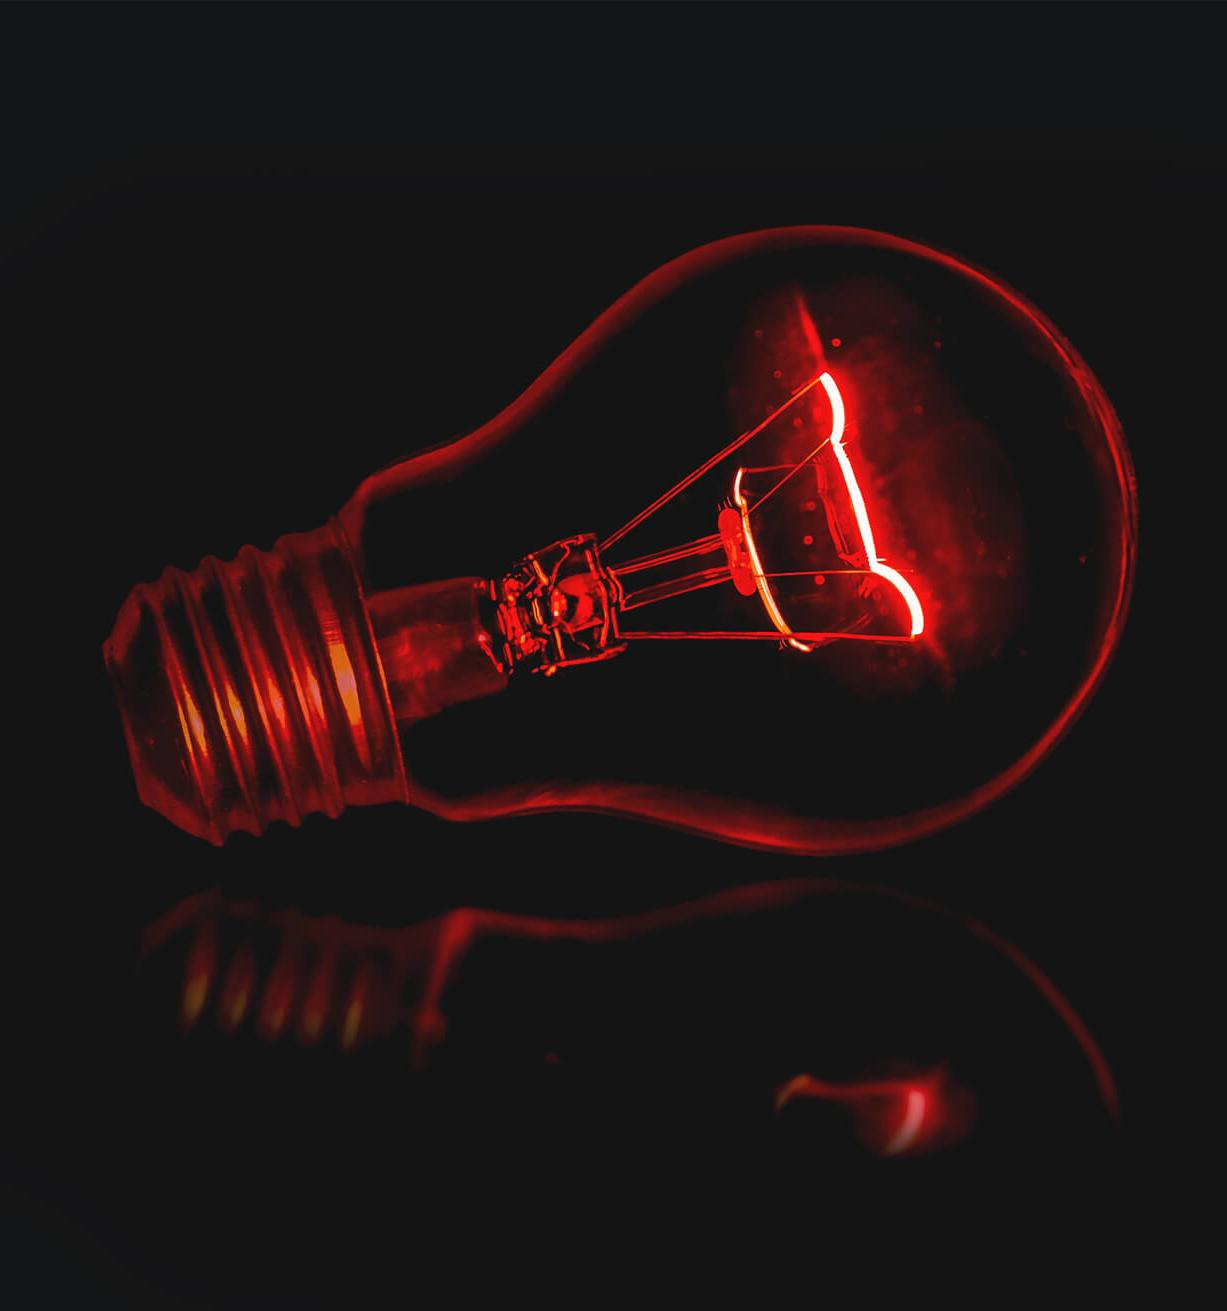 Red enlightened light bulb in front of dark background